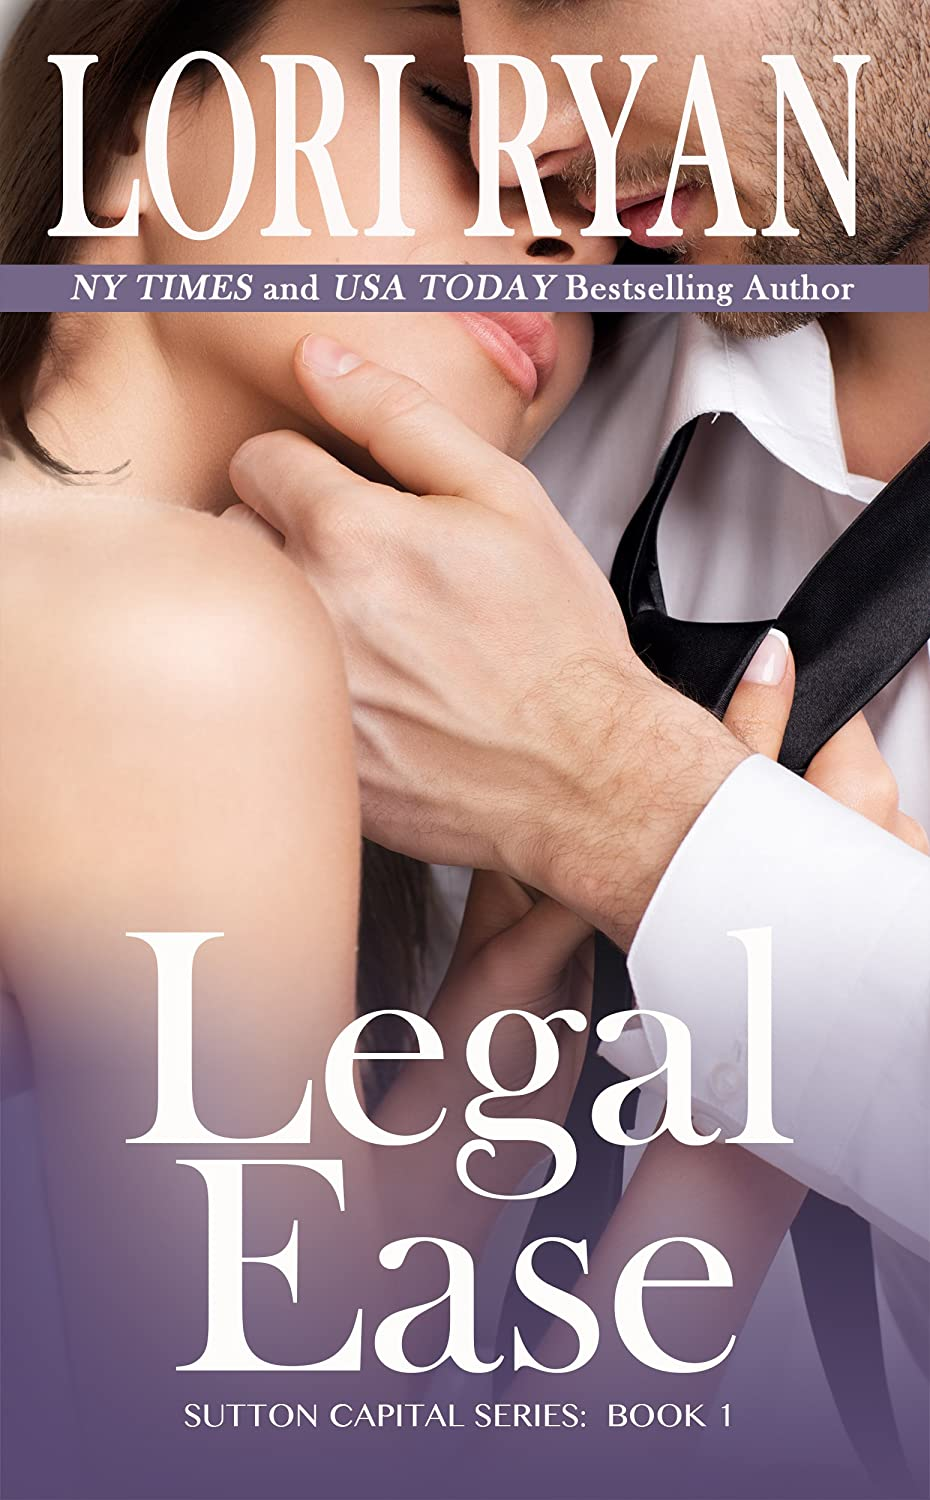 Lori Ryan Legal Ease